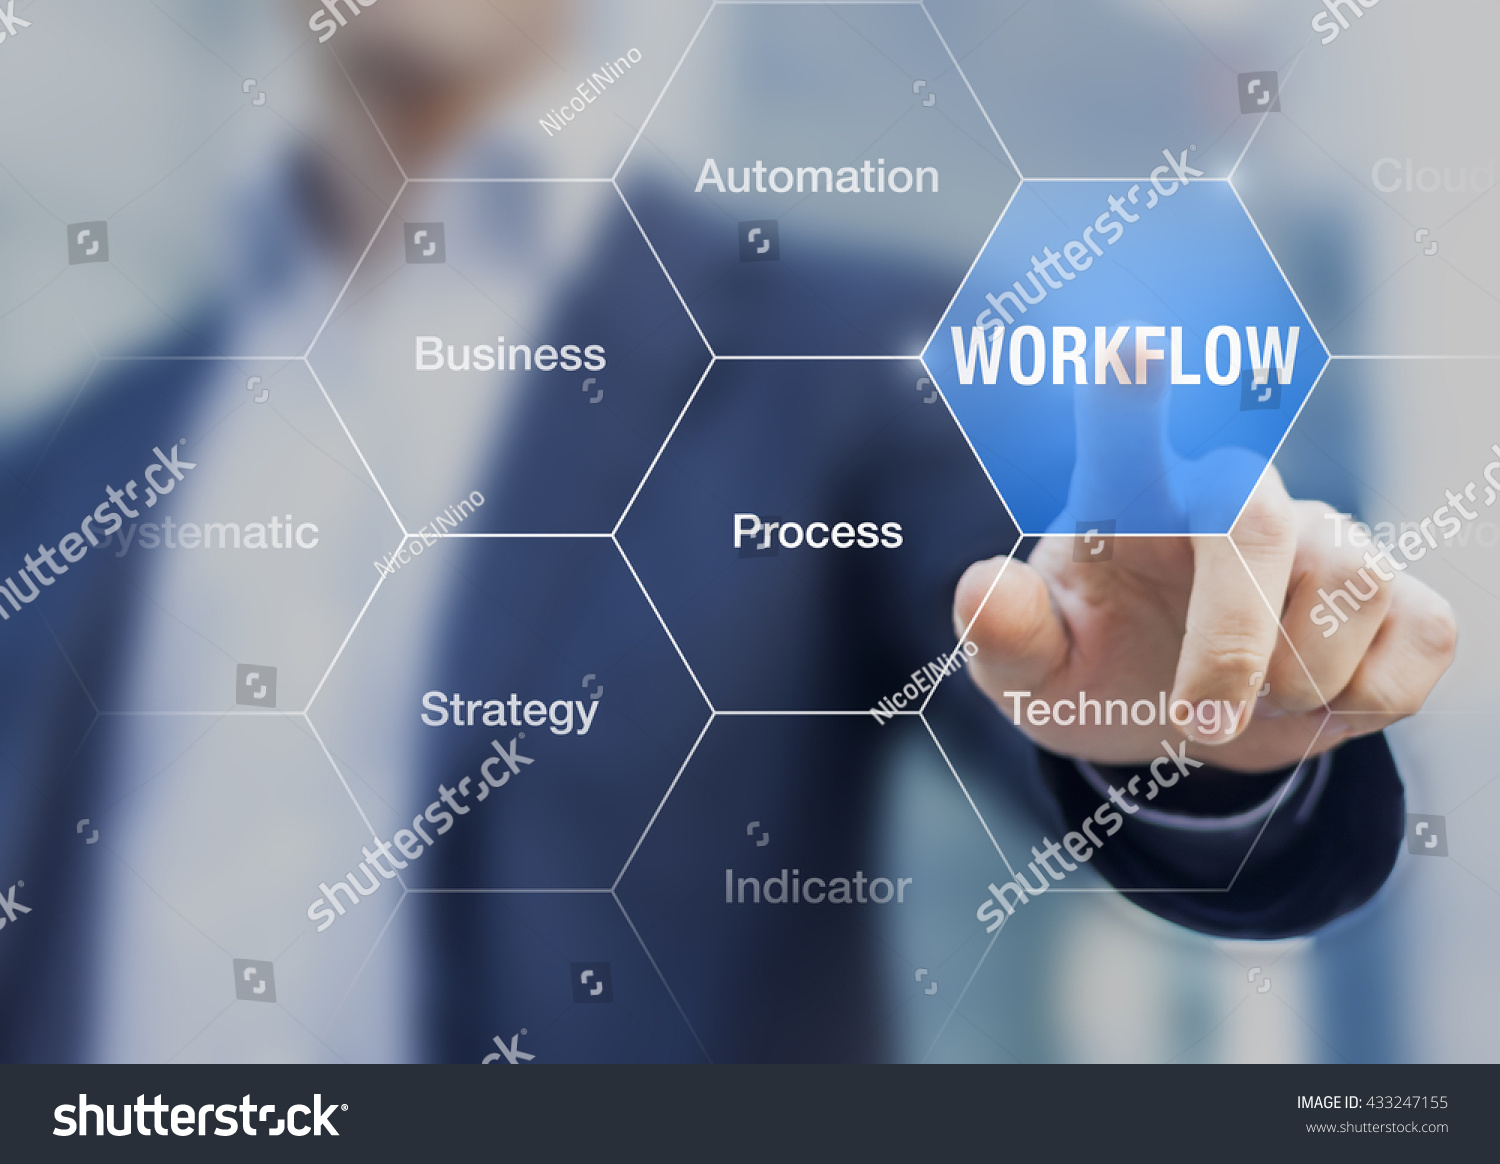 Technology Management Image: Concept About Workflow Improve Efficiency Process Stock